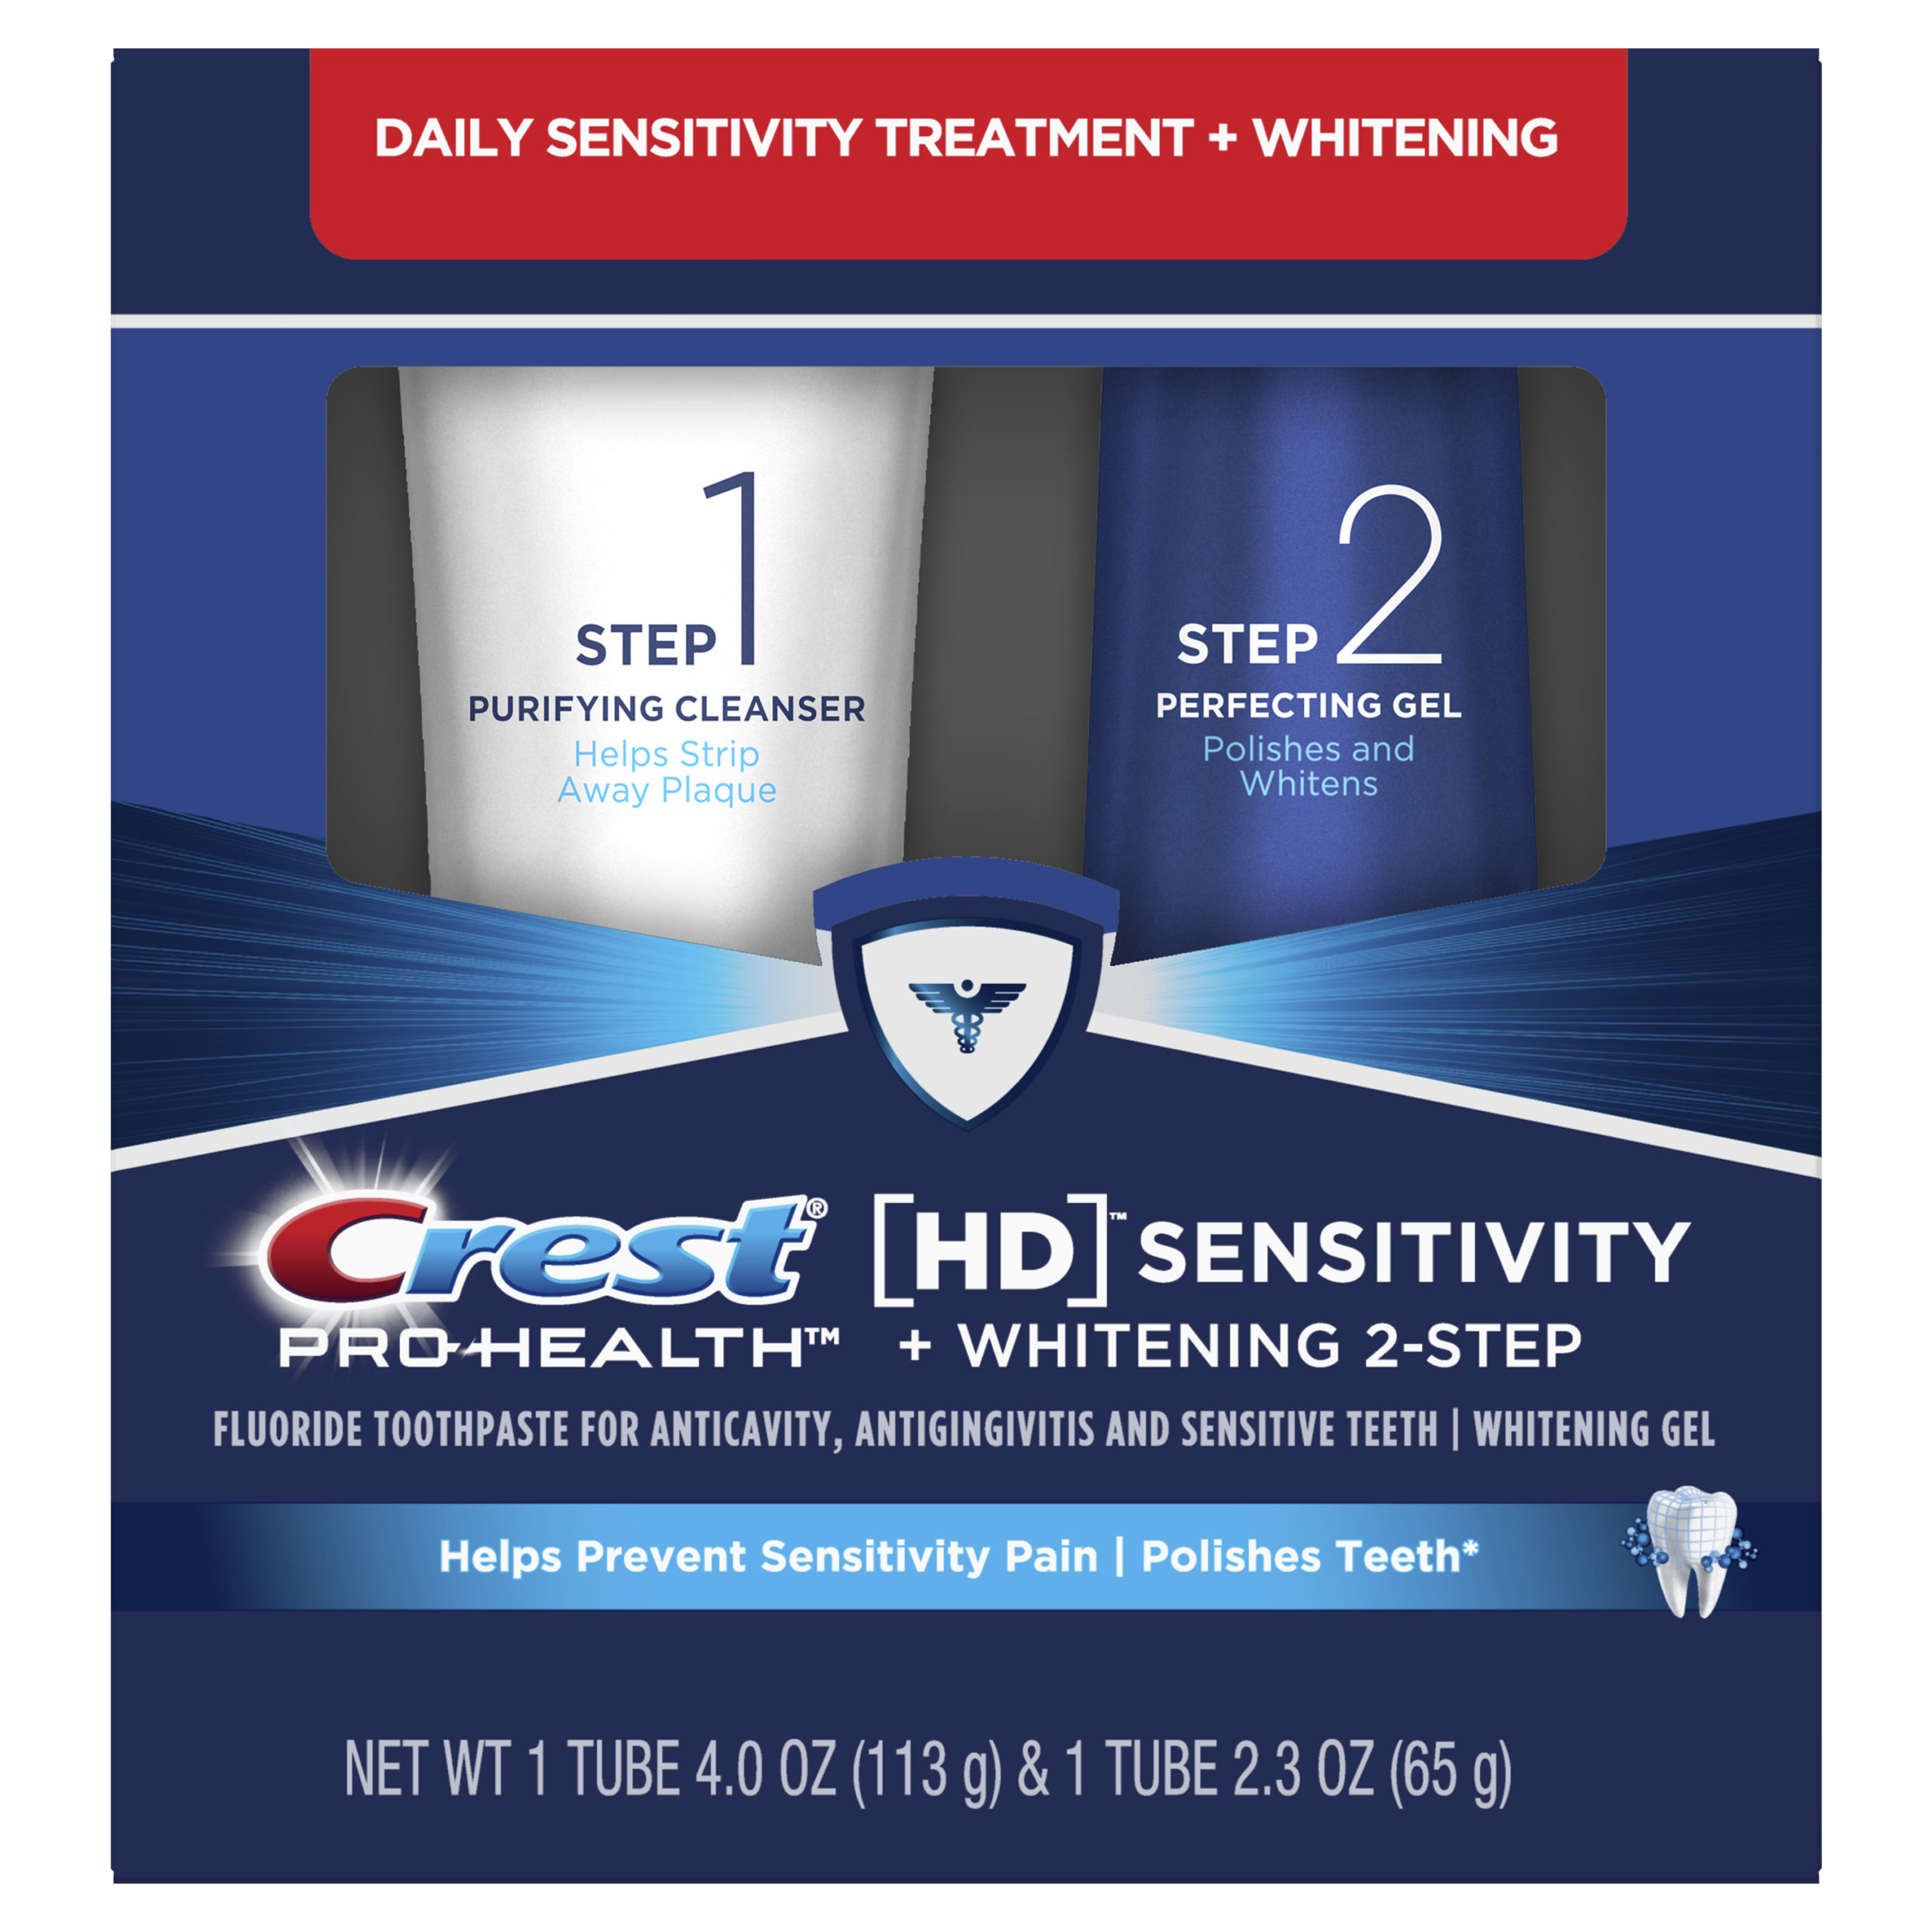 Crest HD Sensitive + Whitening Two-Step Toothpaste